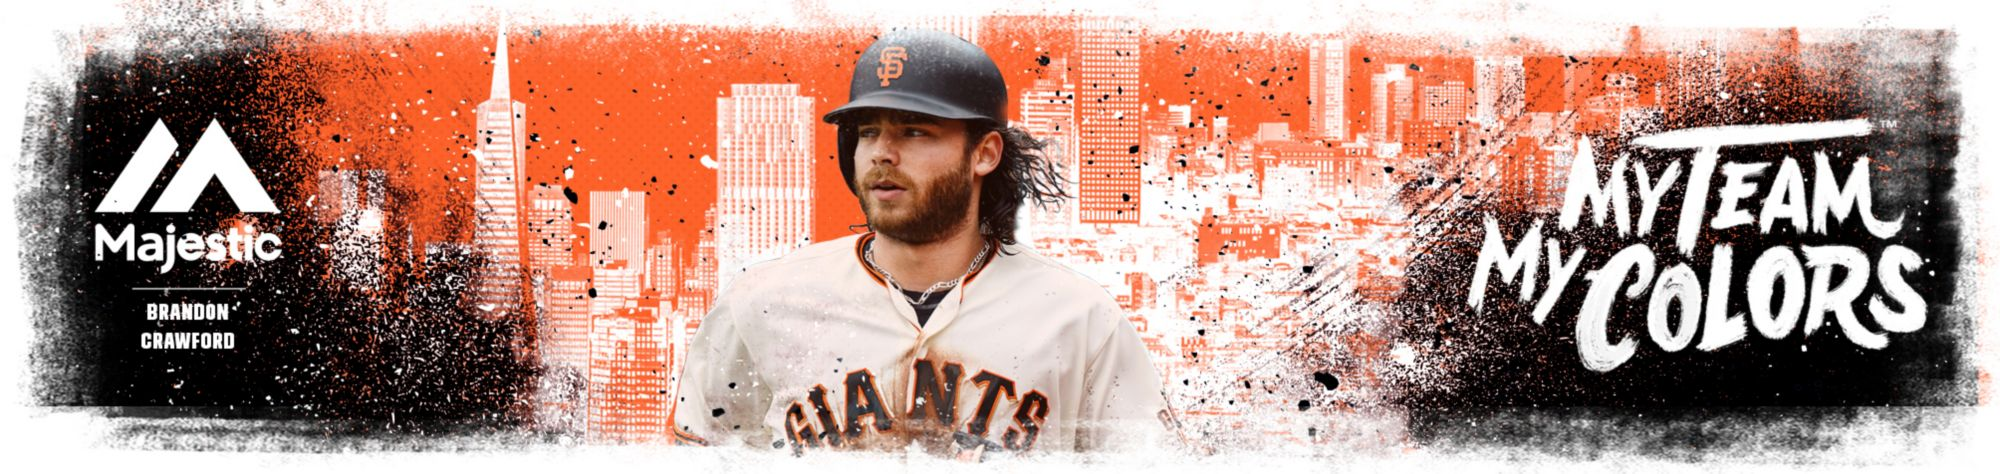 San Francisco Giants Apparel & Gear